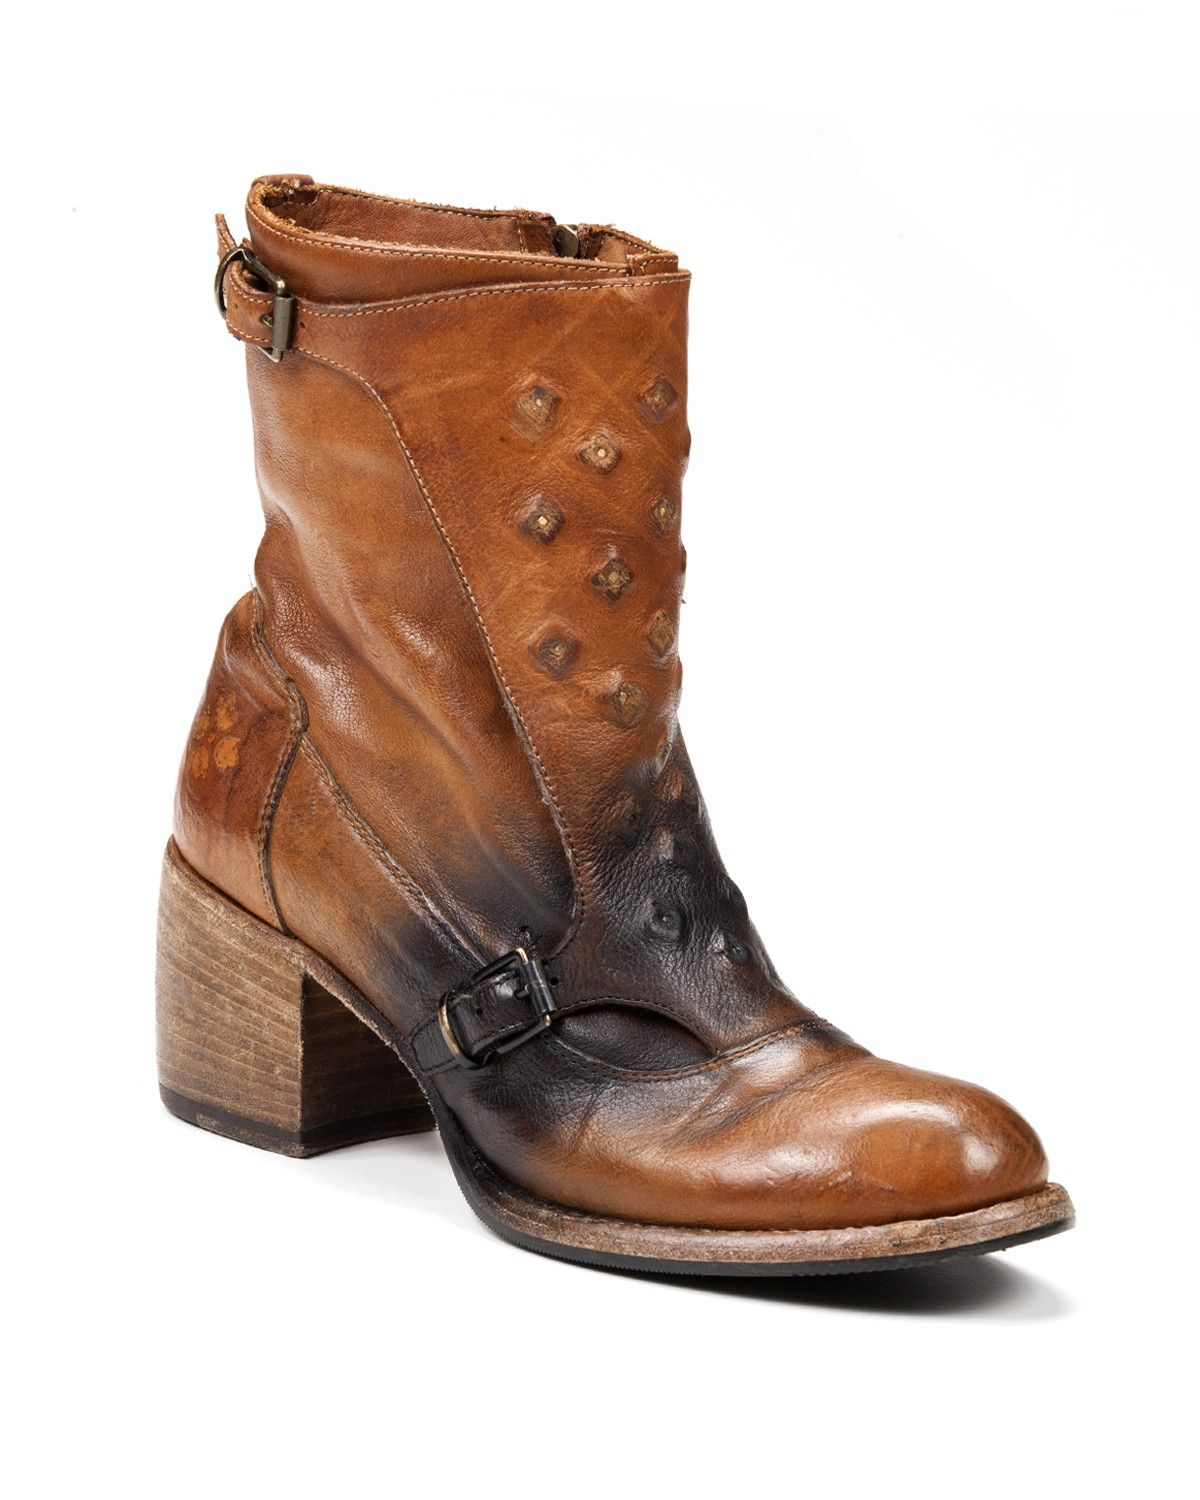 7cc8f1c41e2 The perfect boots for any occasion from Patricia Nash! Handmade in ...